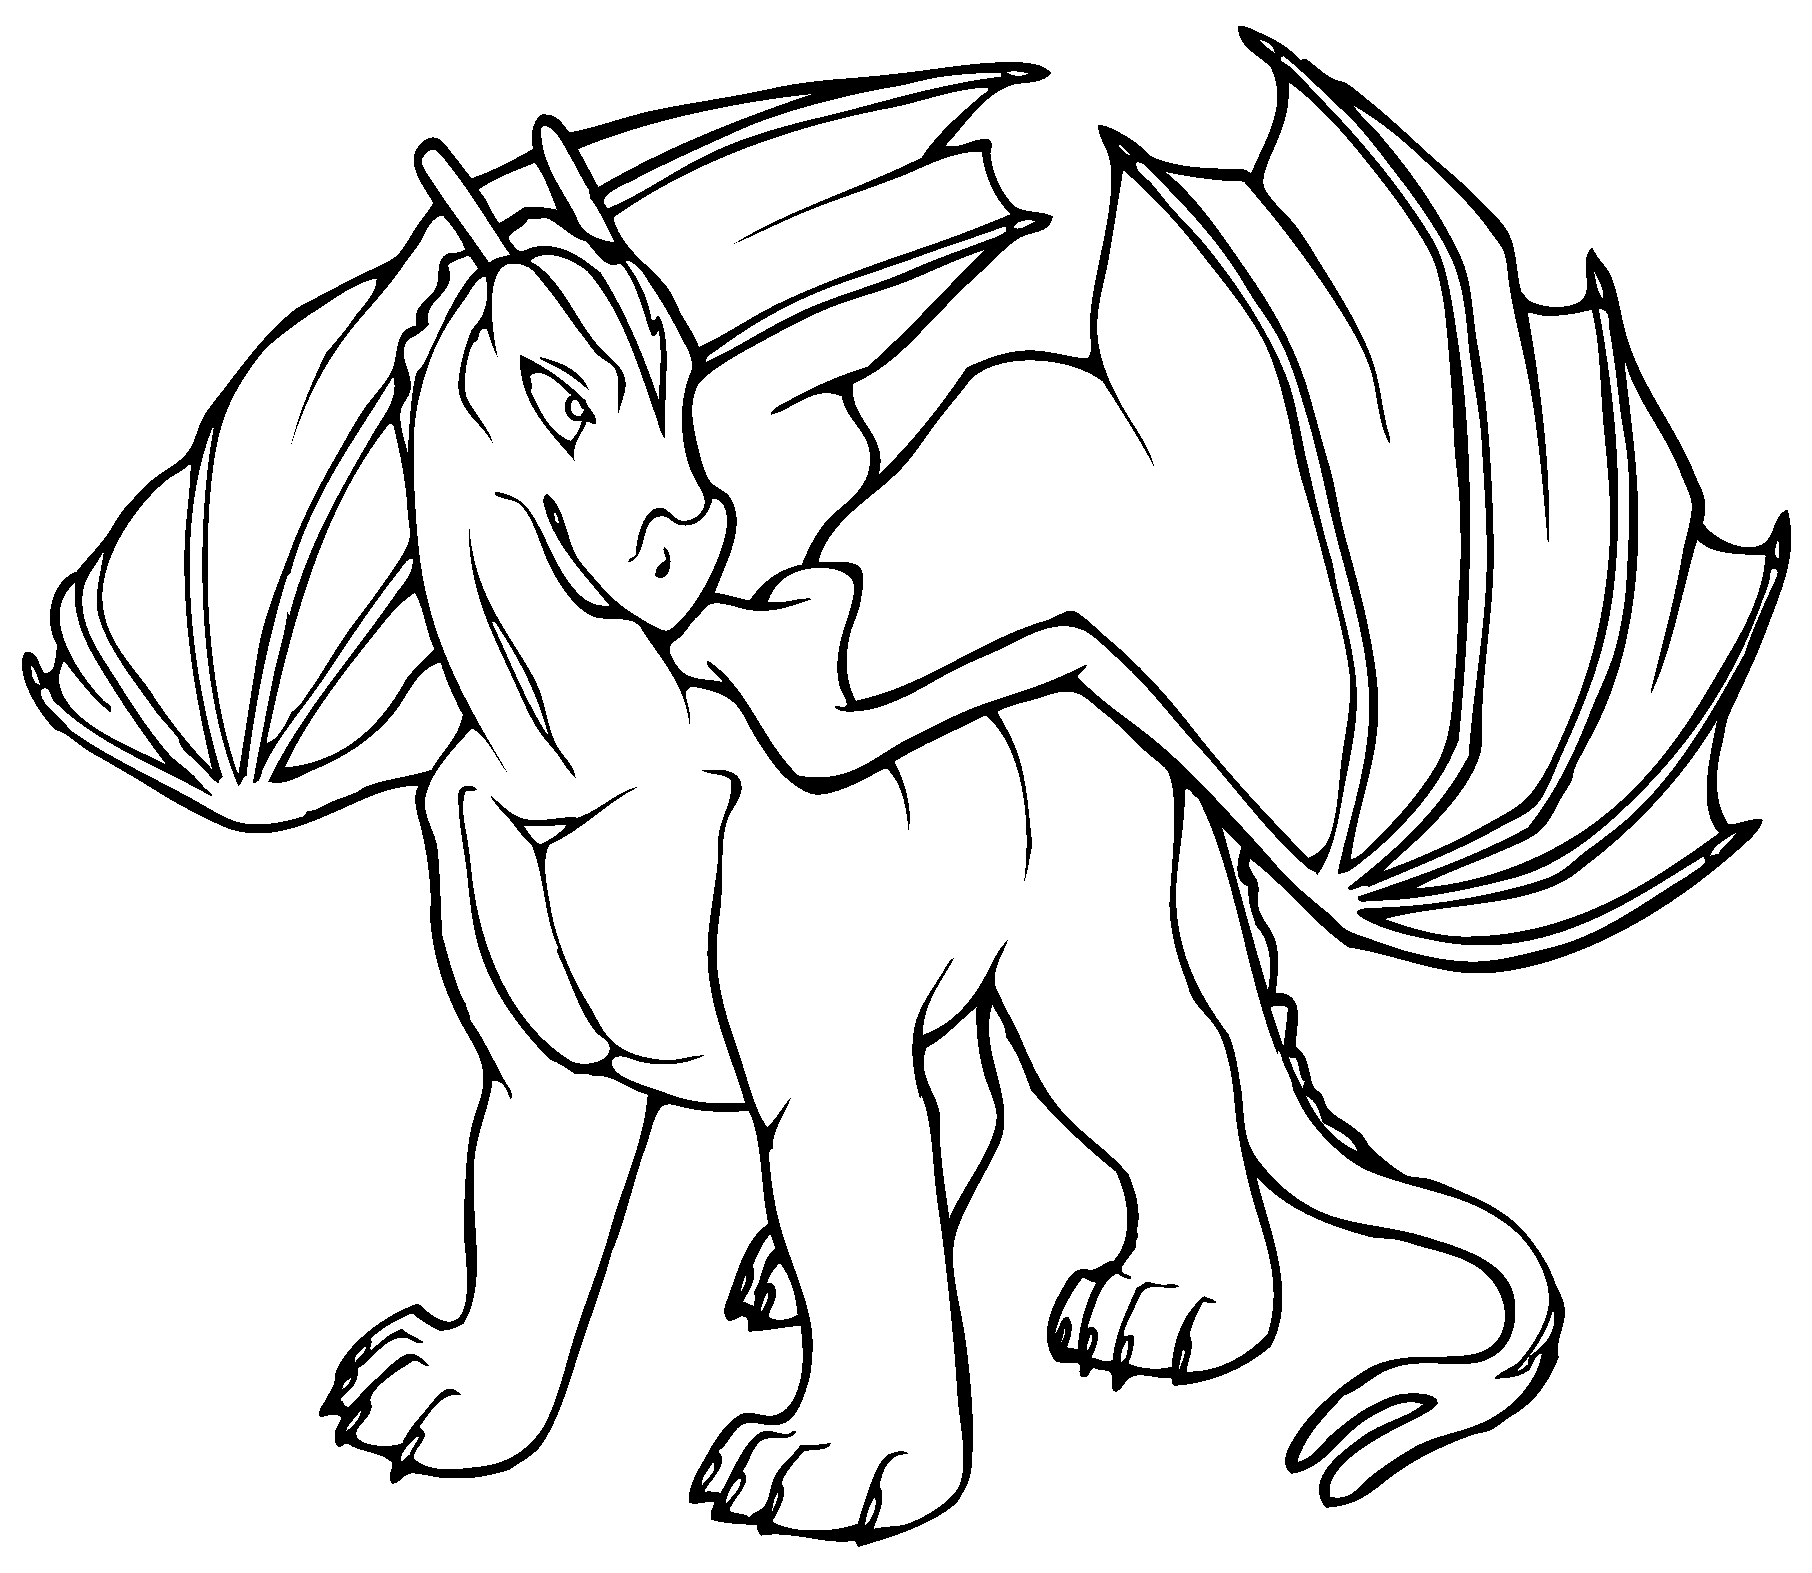 dragon coloring pages free - photo#12